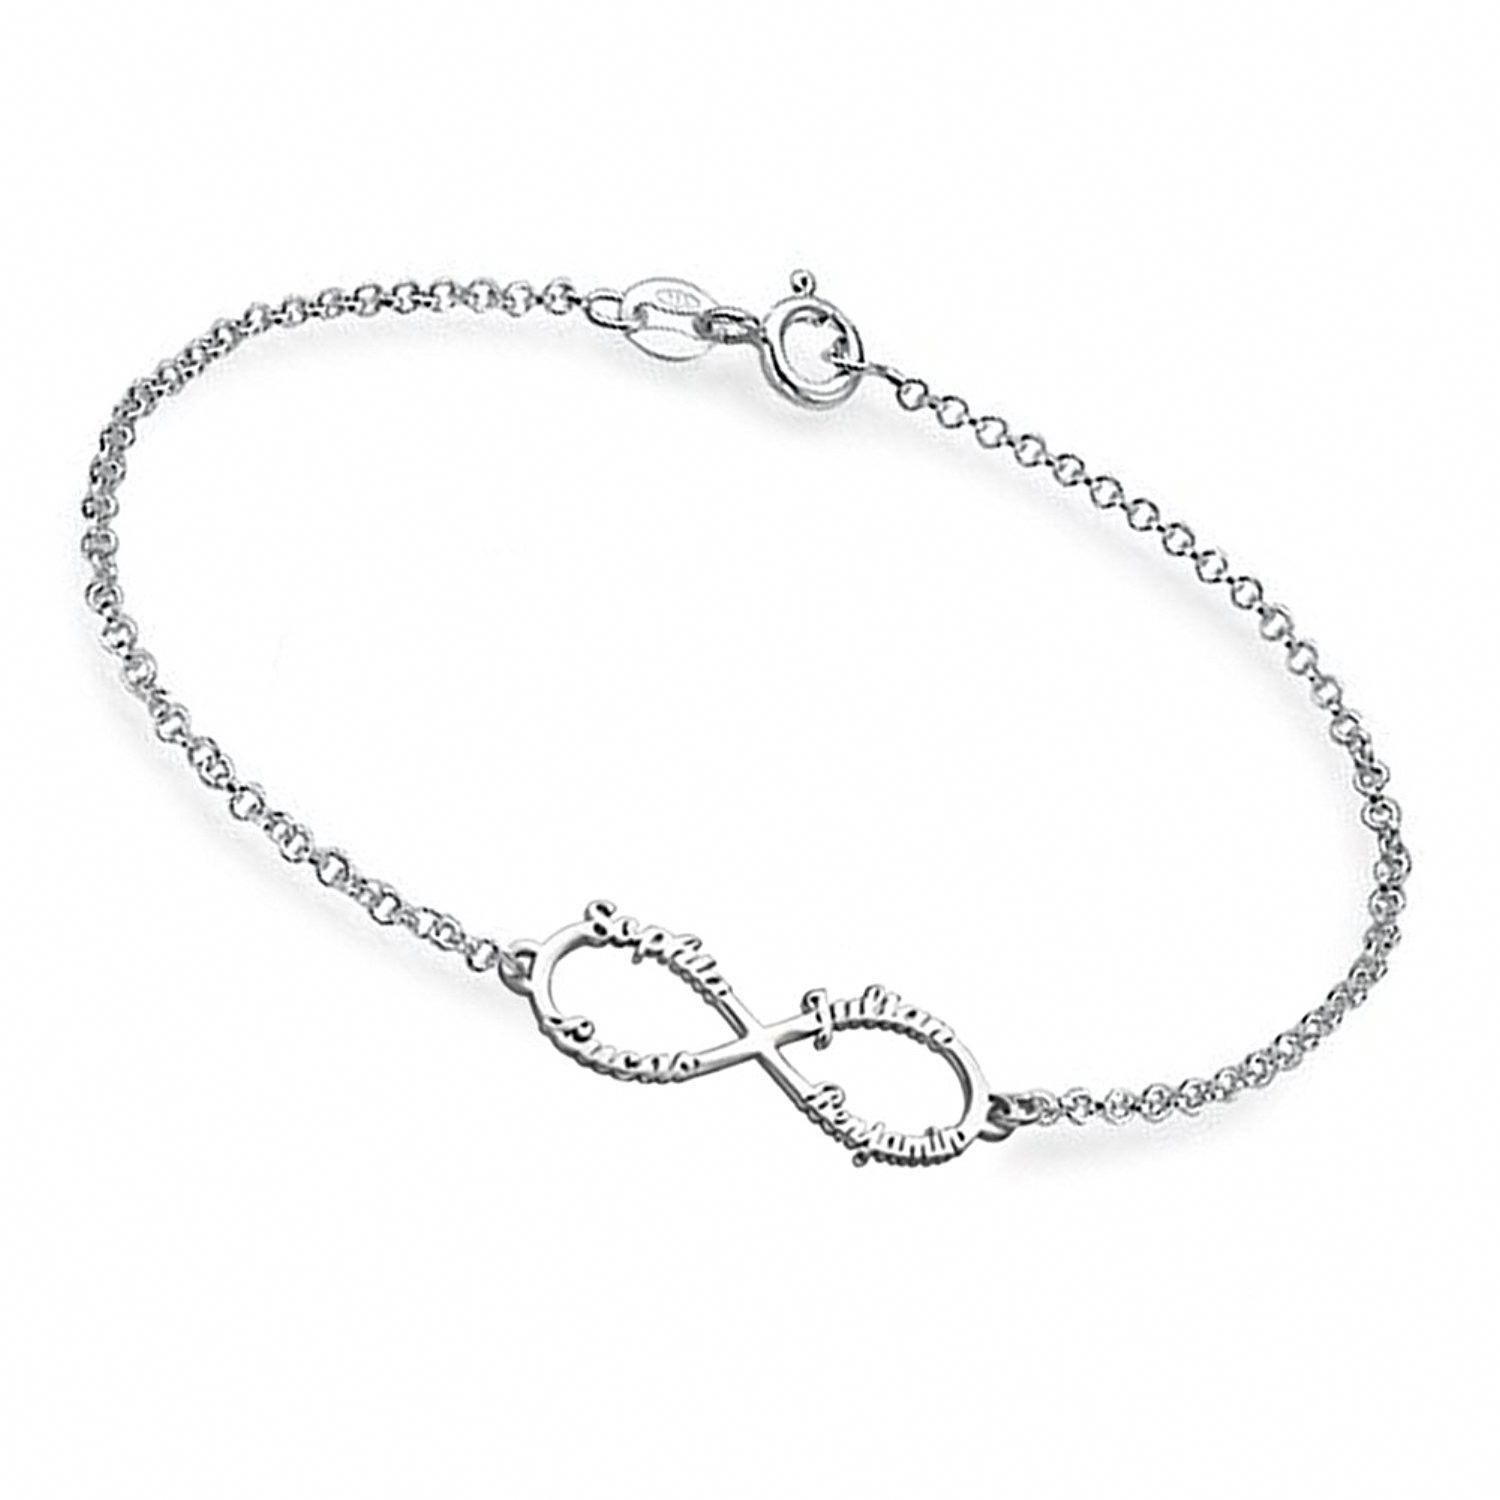 Personalized 925 Sterling Silver